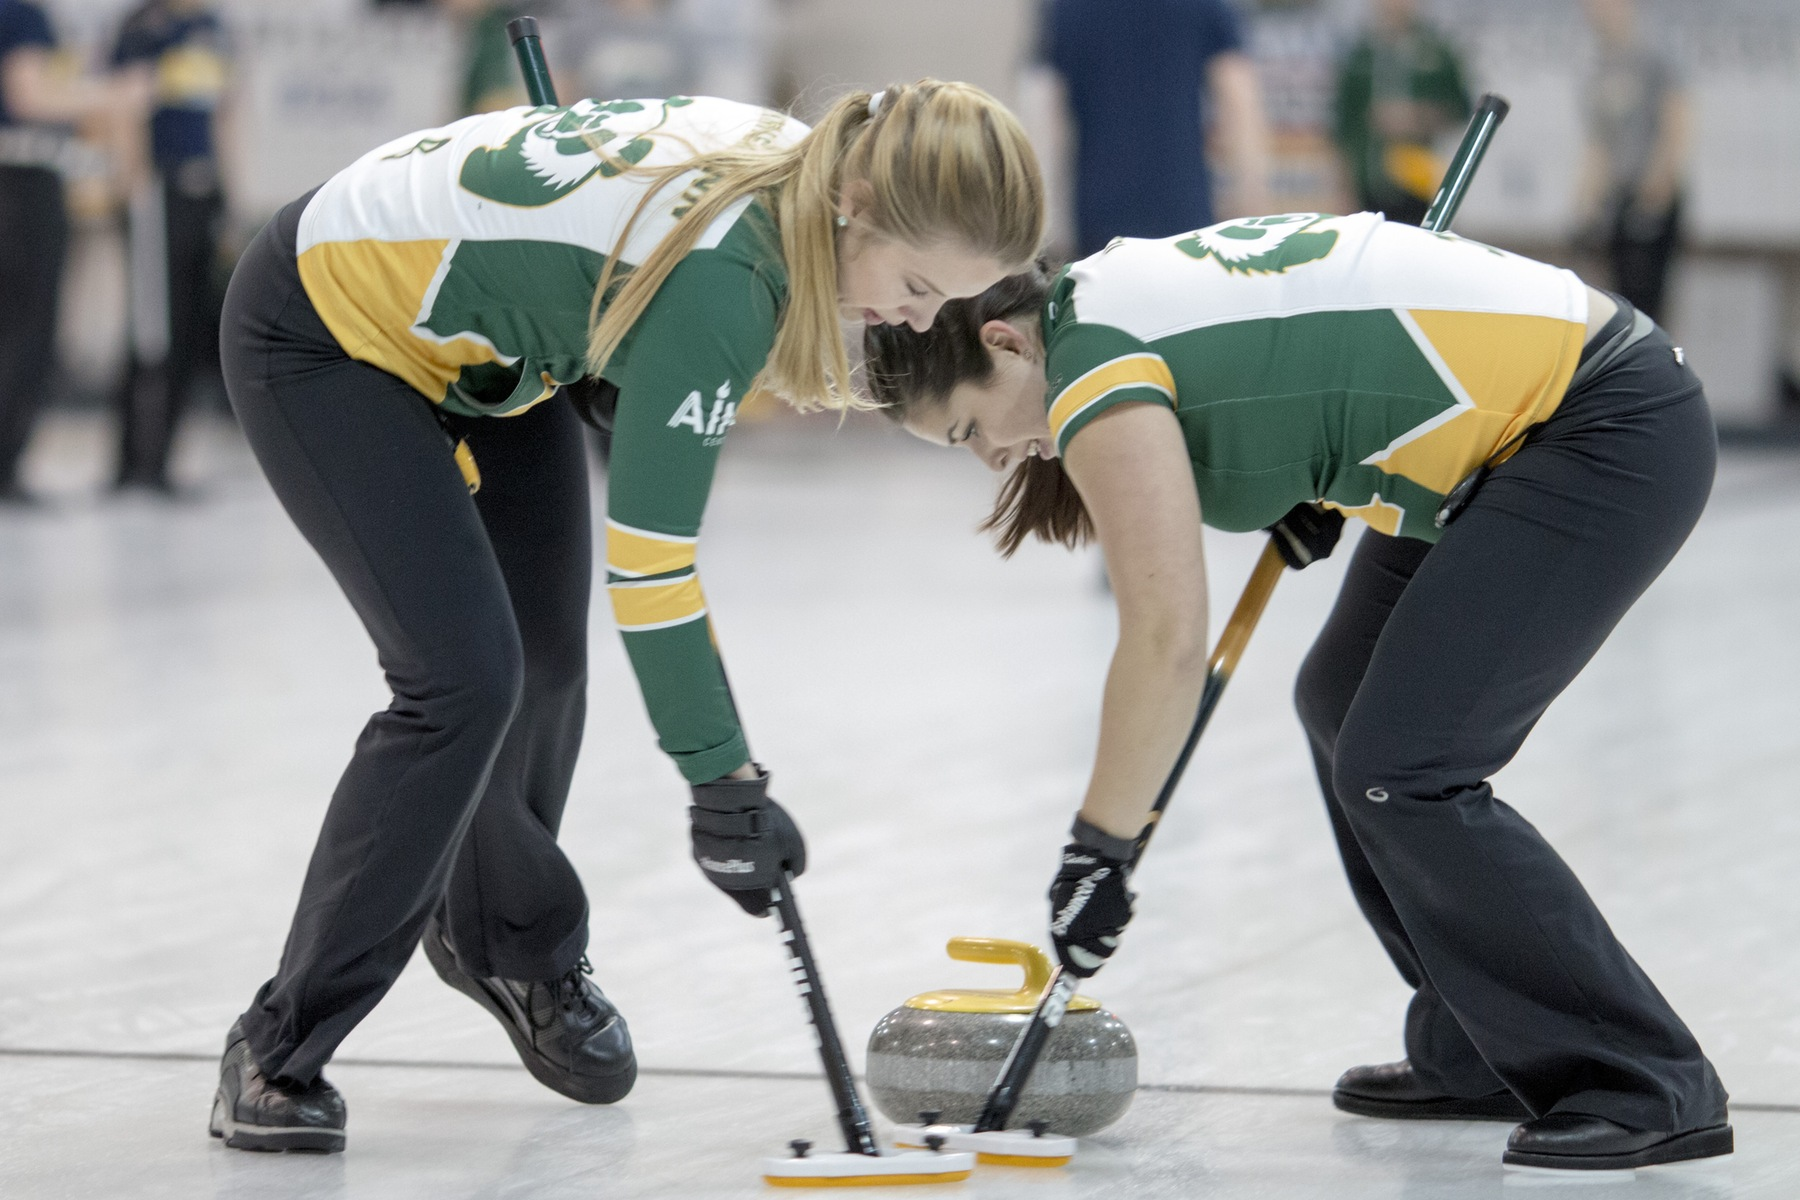 Globe-trotting Alberta curlers look to build on reputation of success